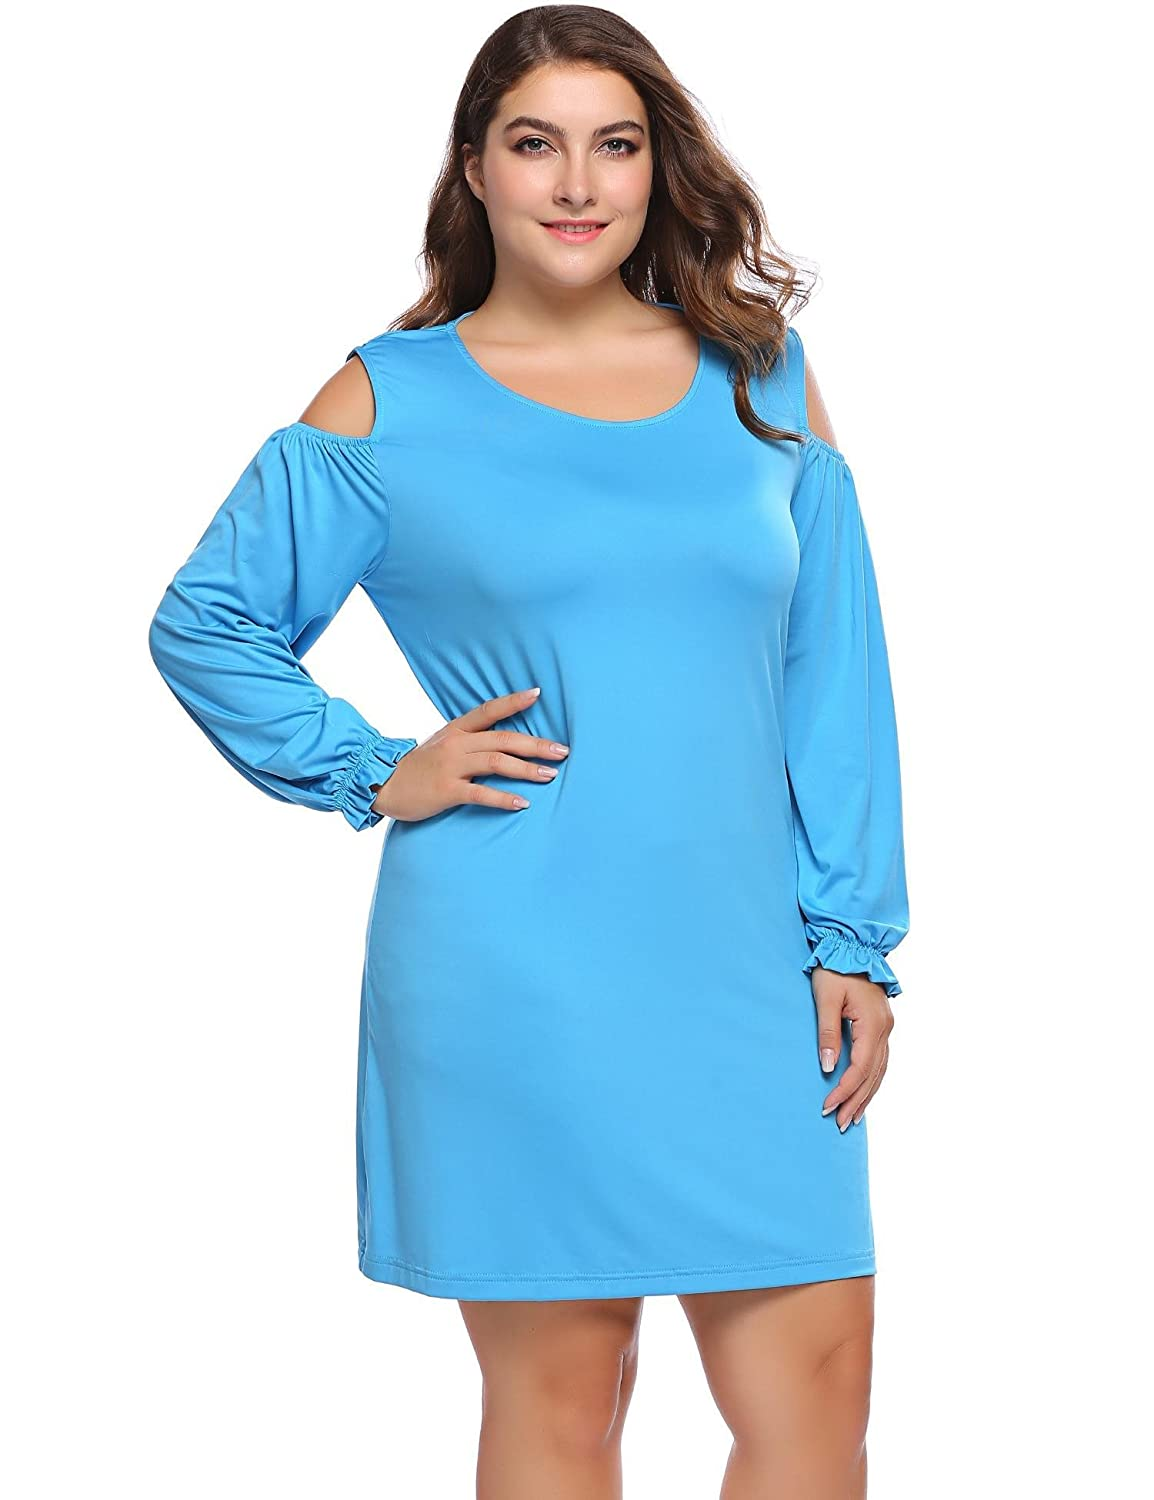 d9d8c968ab7 Top 10 wholesale Blue And Yellow Plus Size Dress - Chinabrands.com